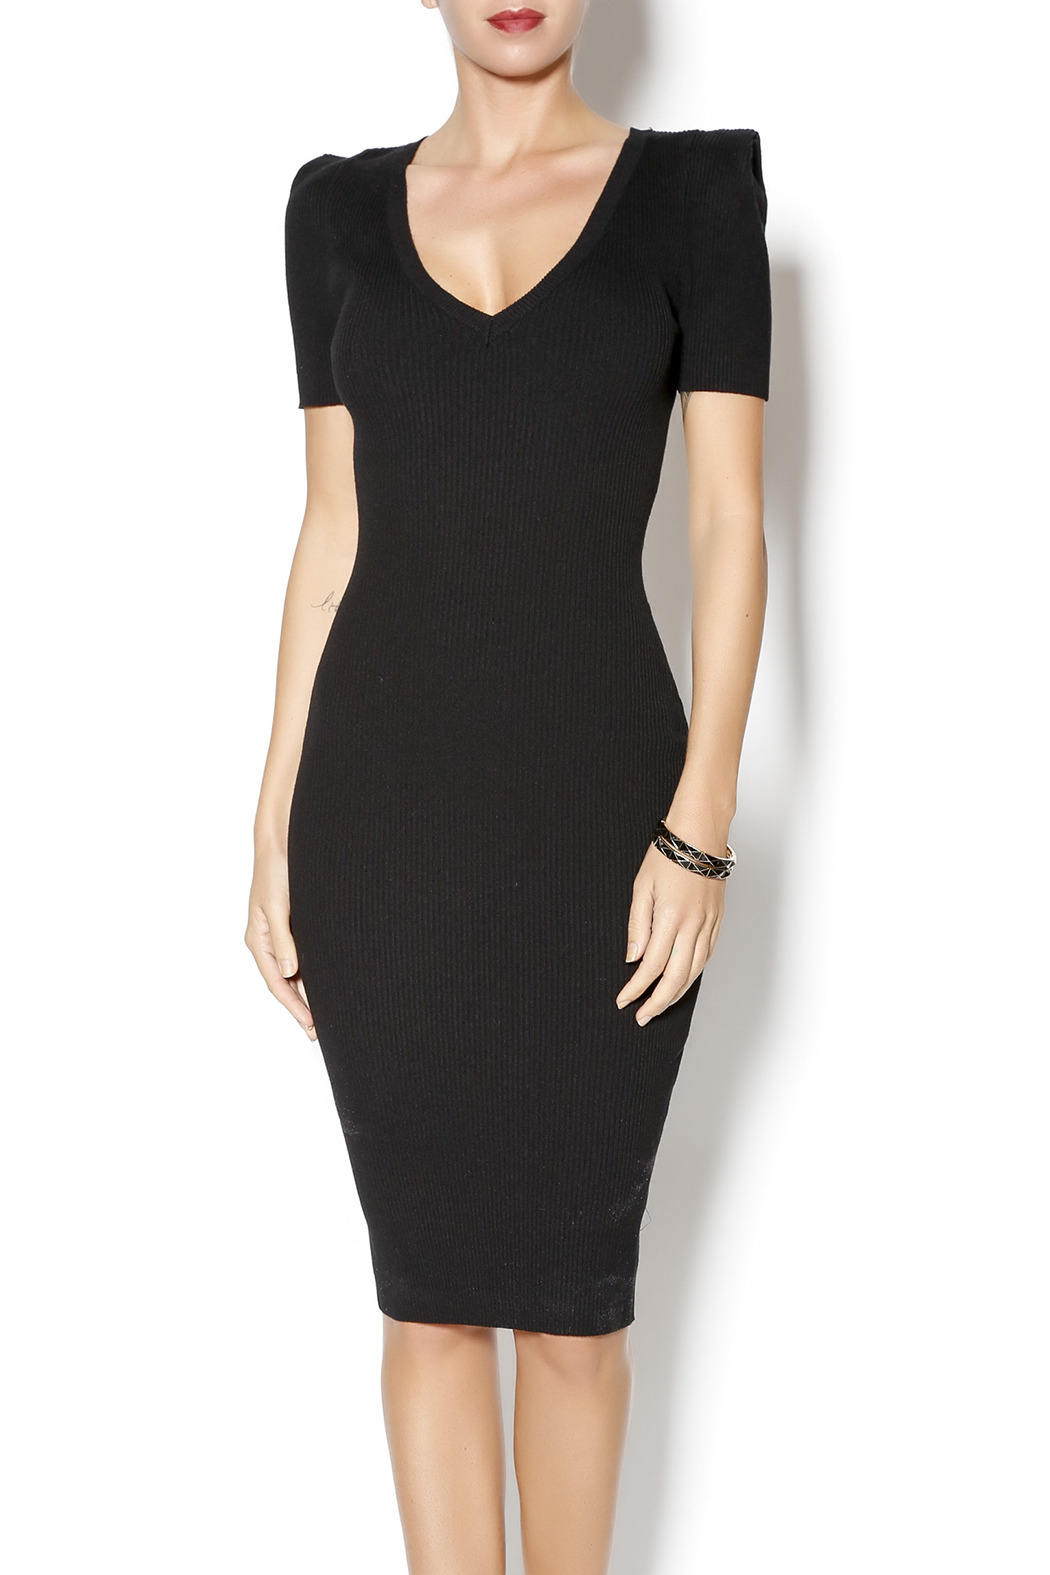 Cashmere Classic black dress from Manhattan by Dor L'Dor — Shoptiques